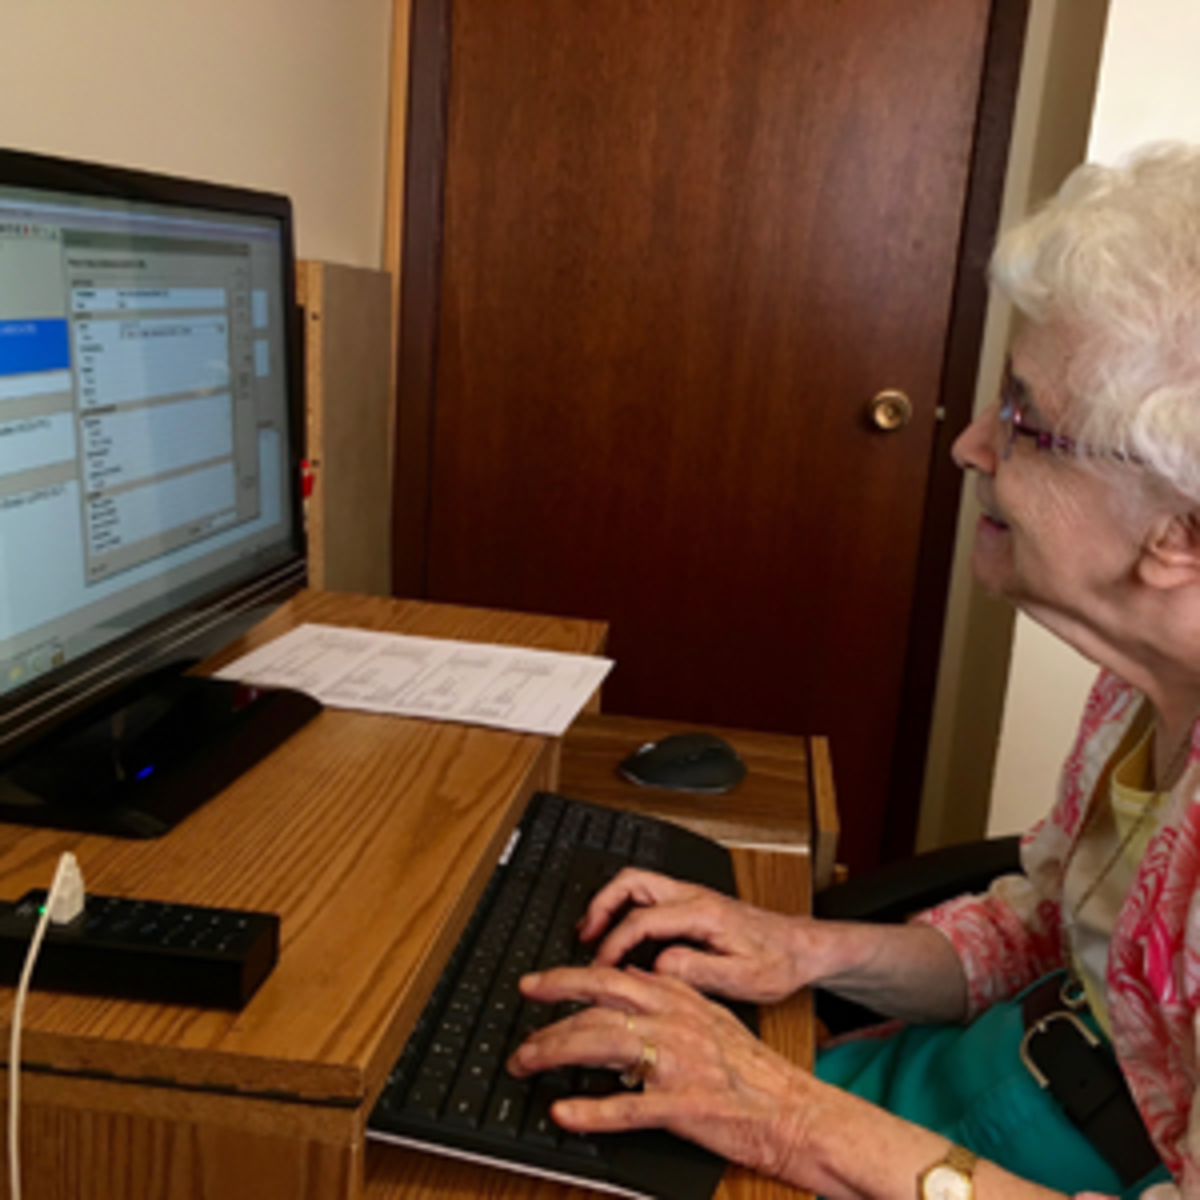 Family History worker at her computer doing research.